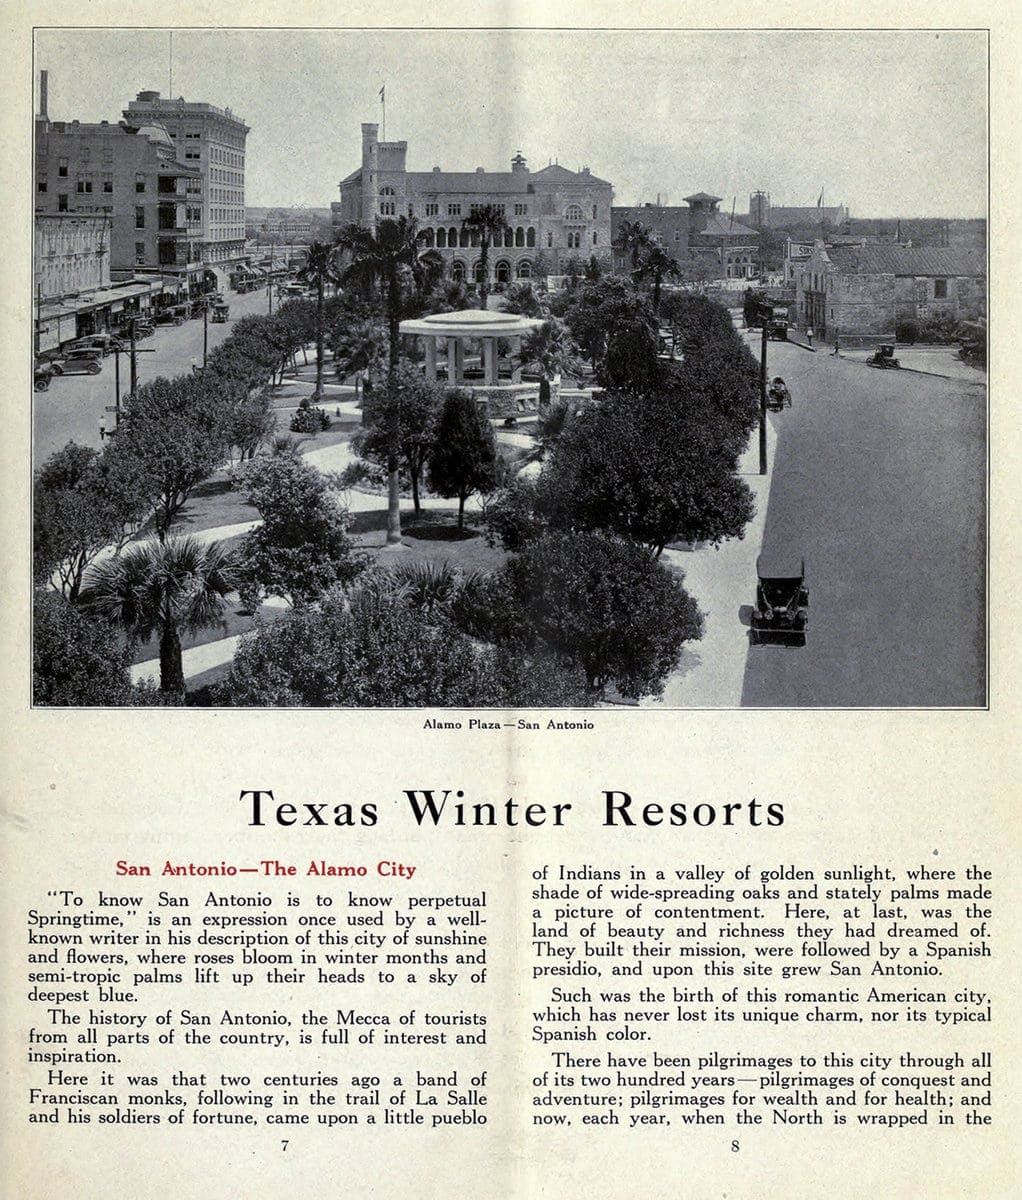 Texas winter resorts in 1919